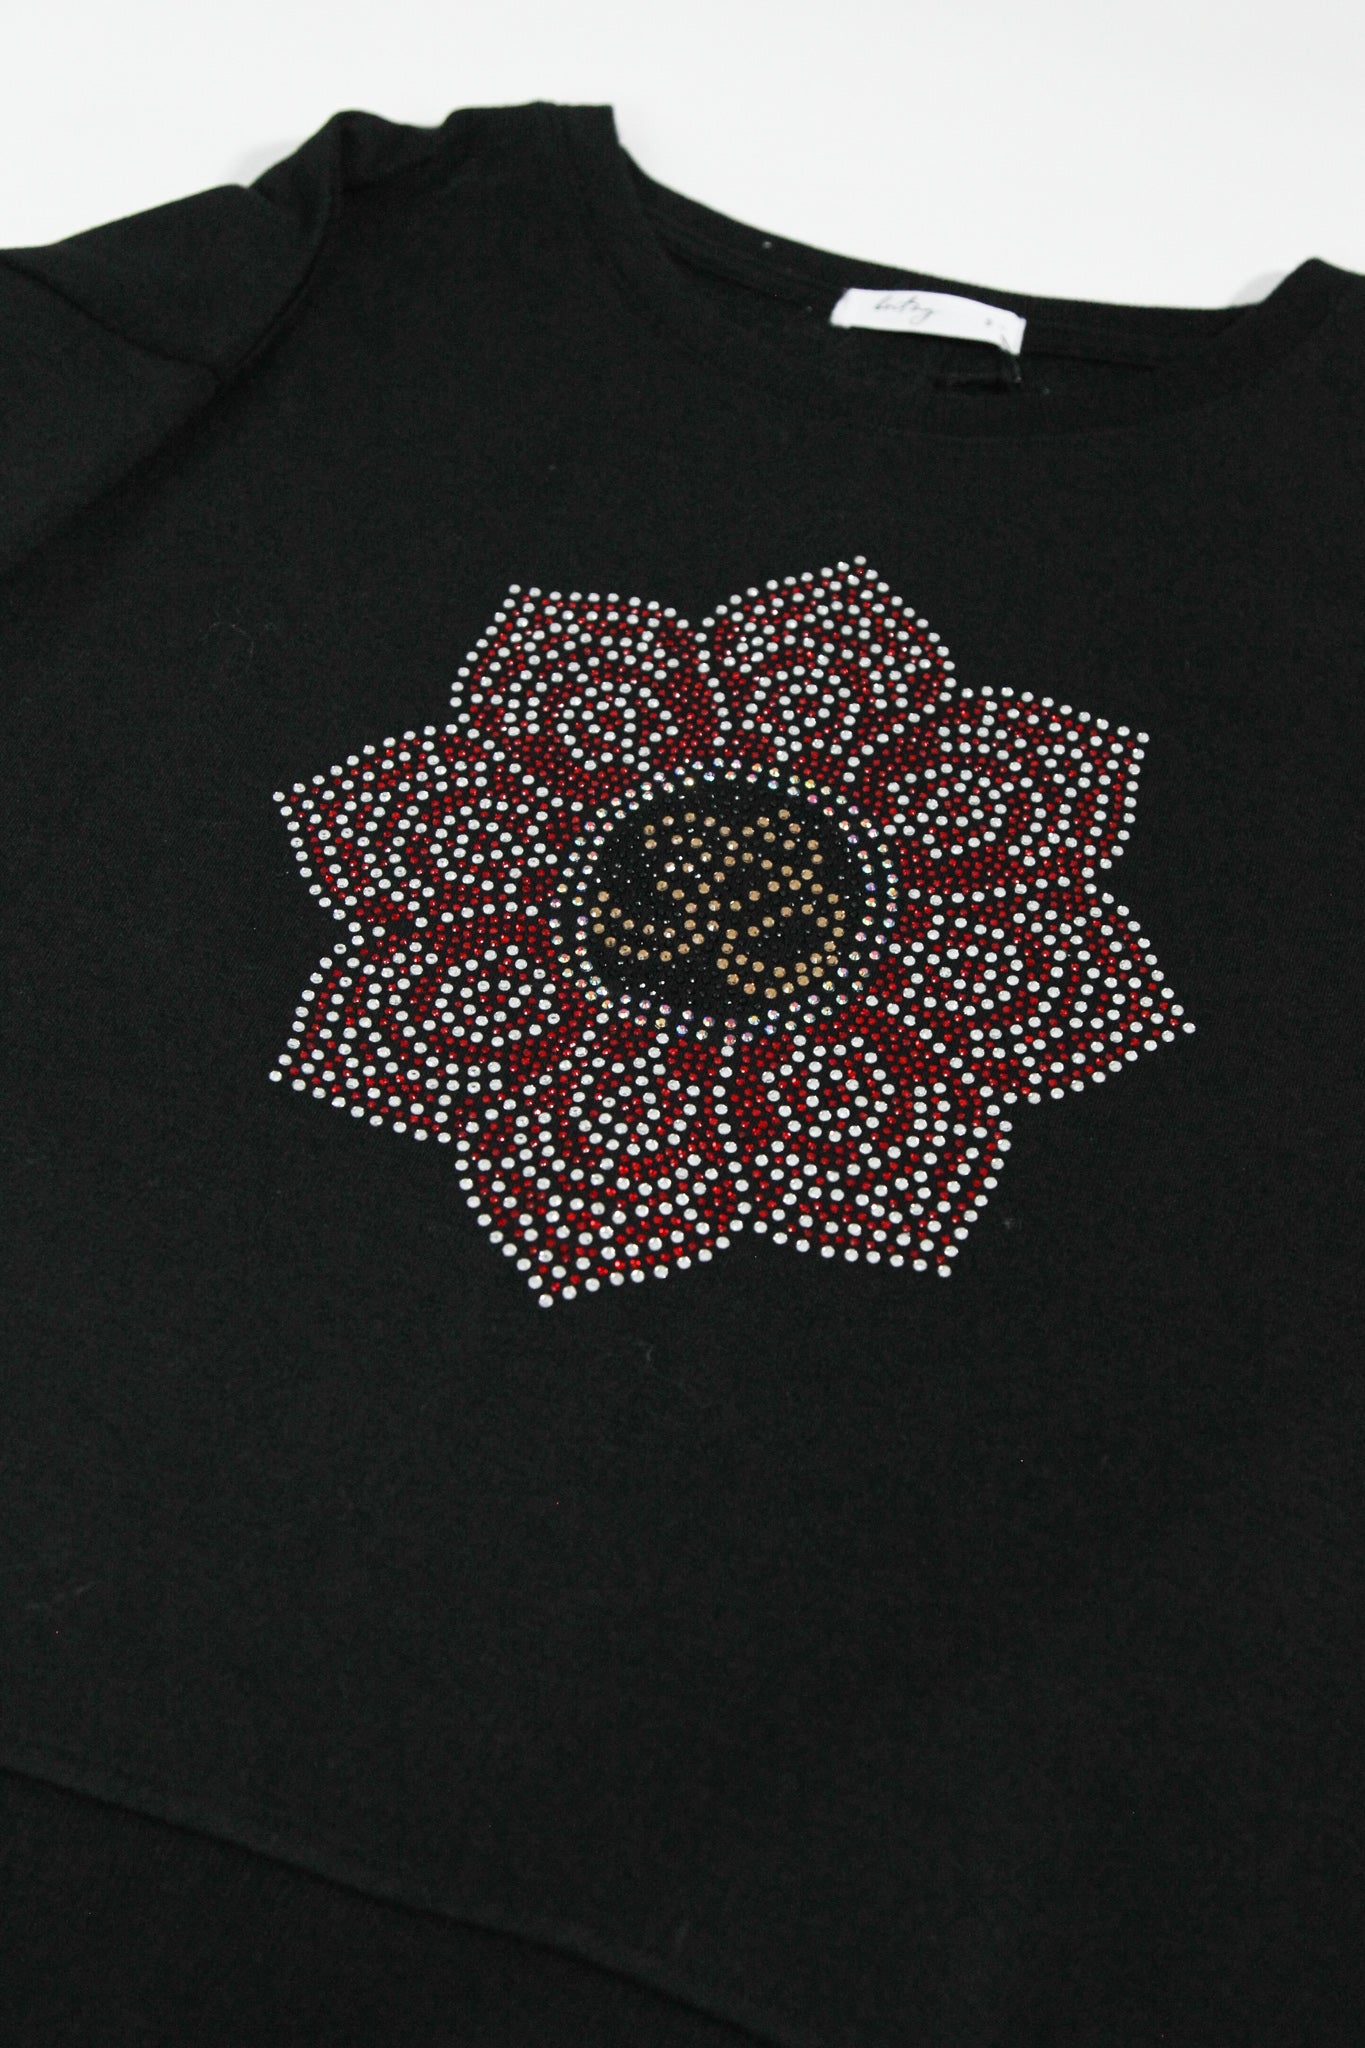 Flower Studded Black Sweatshirt